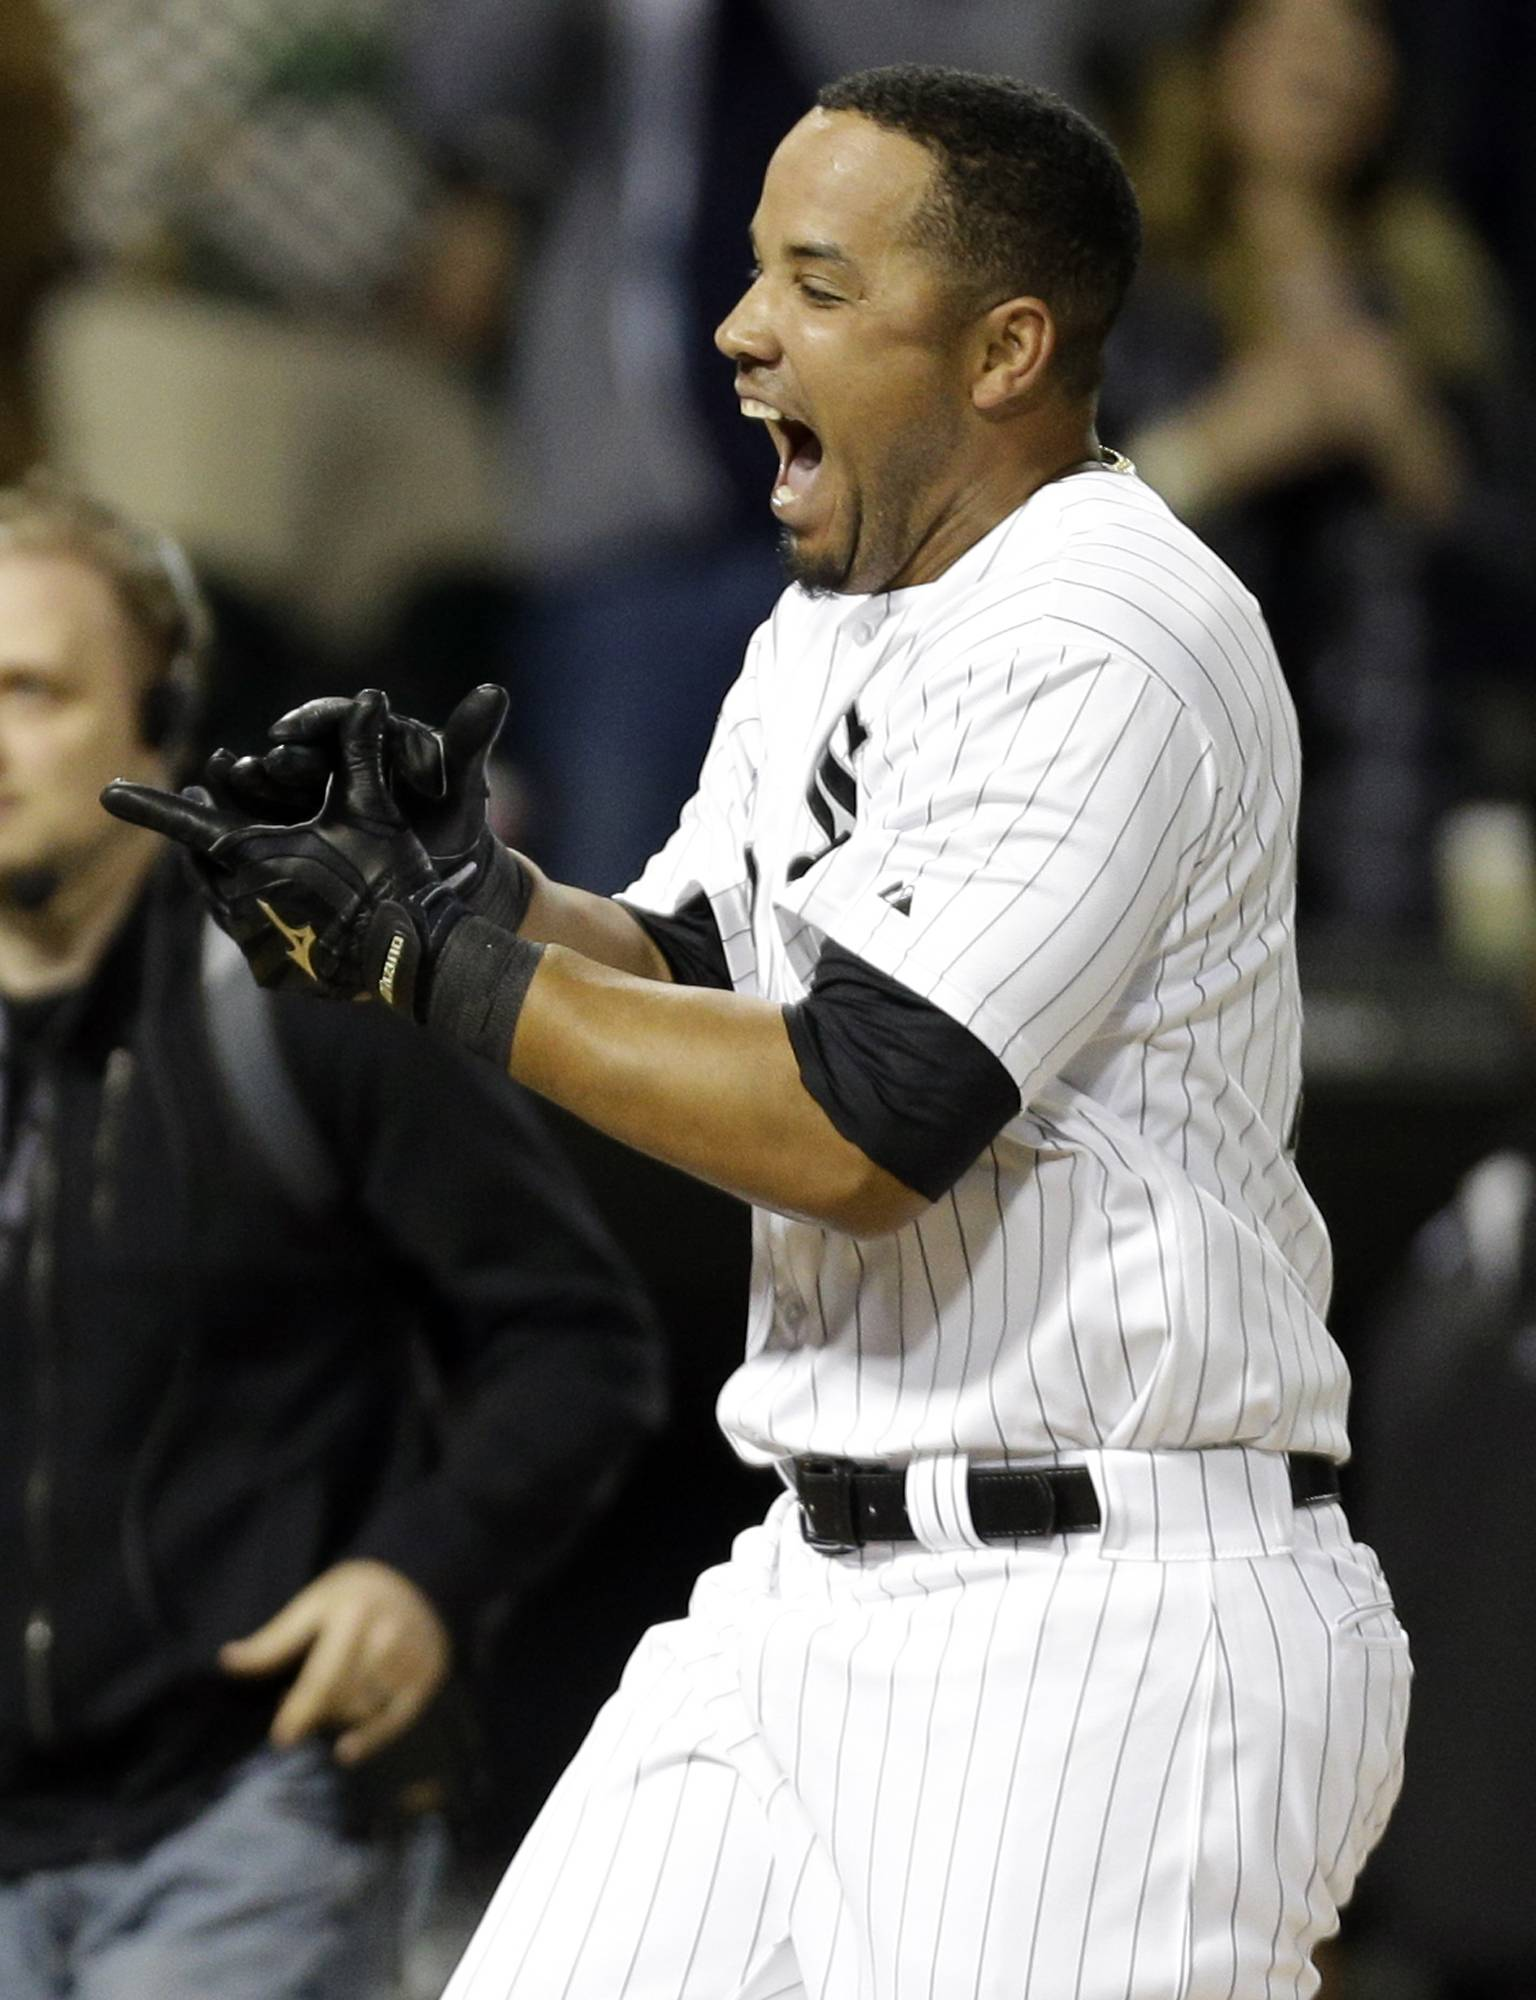 Grand finish to crazy night for White Sox